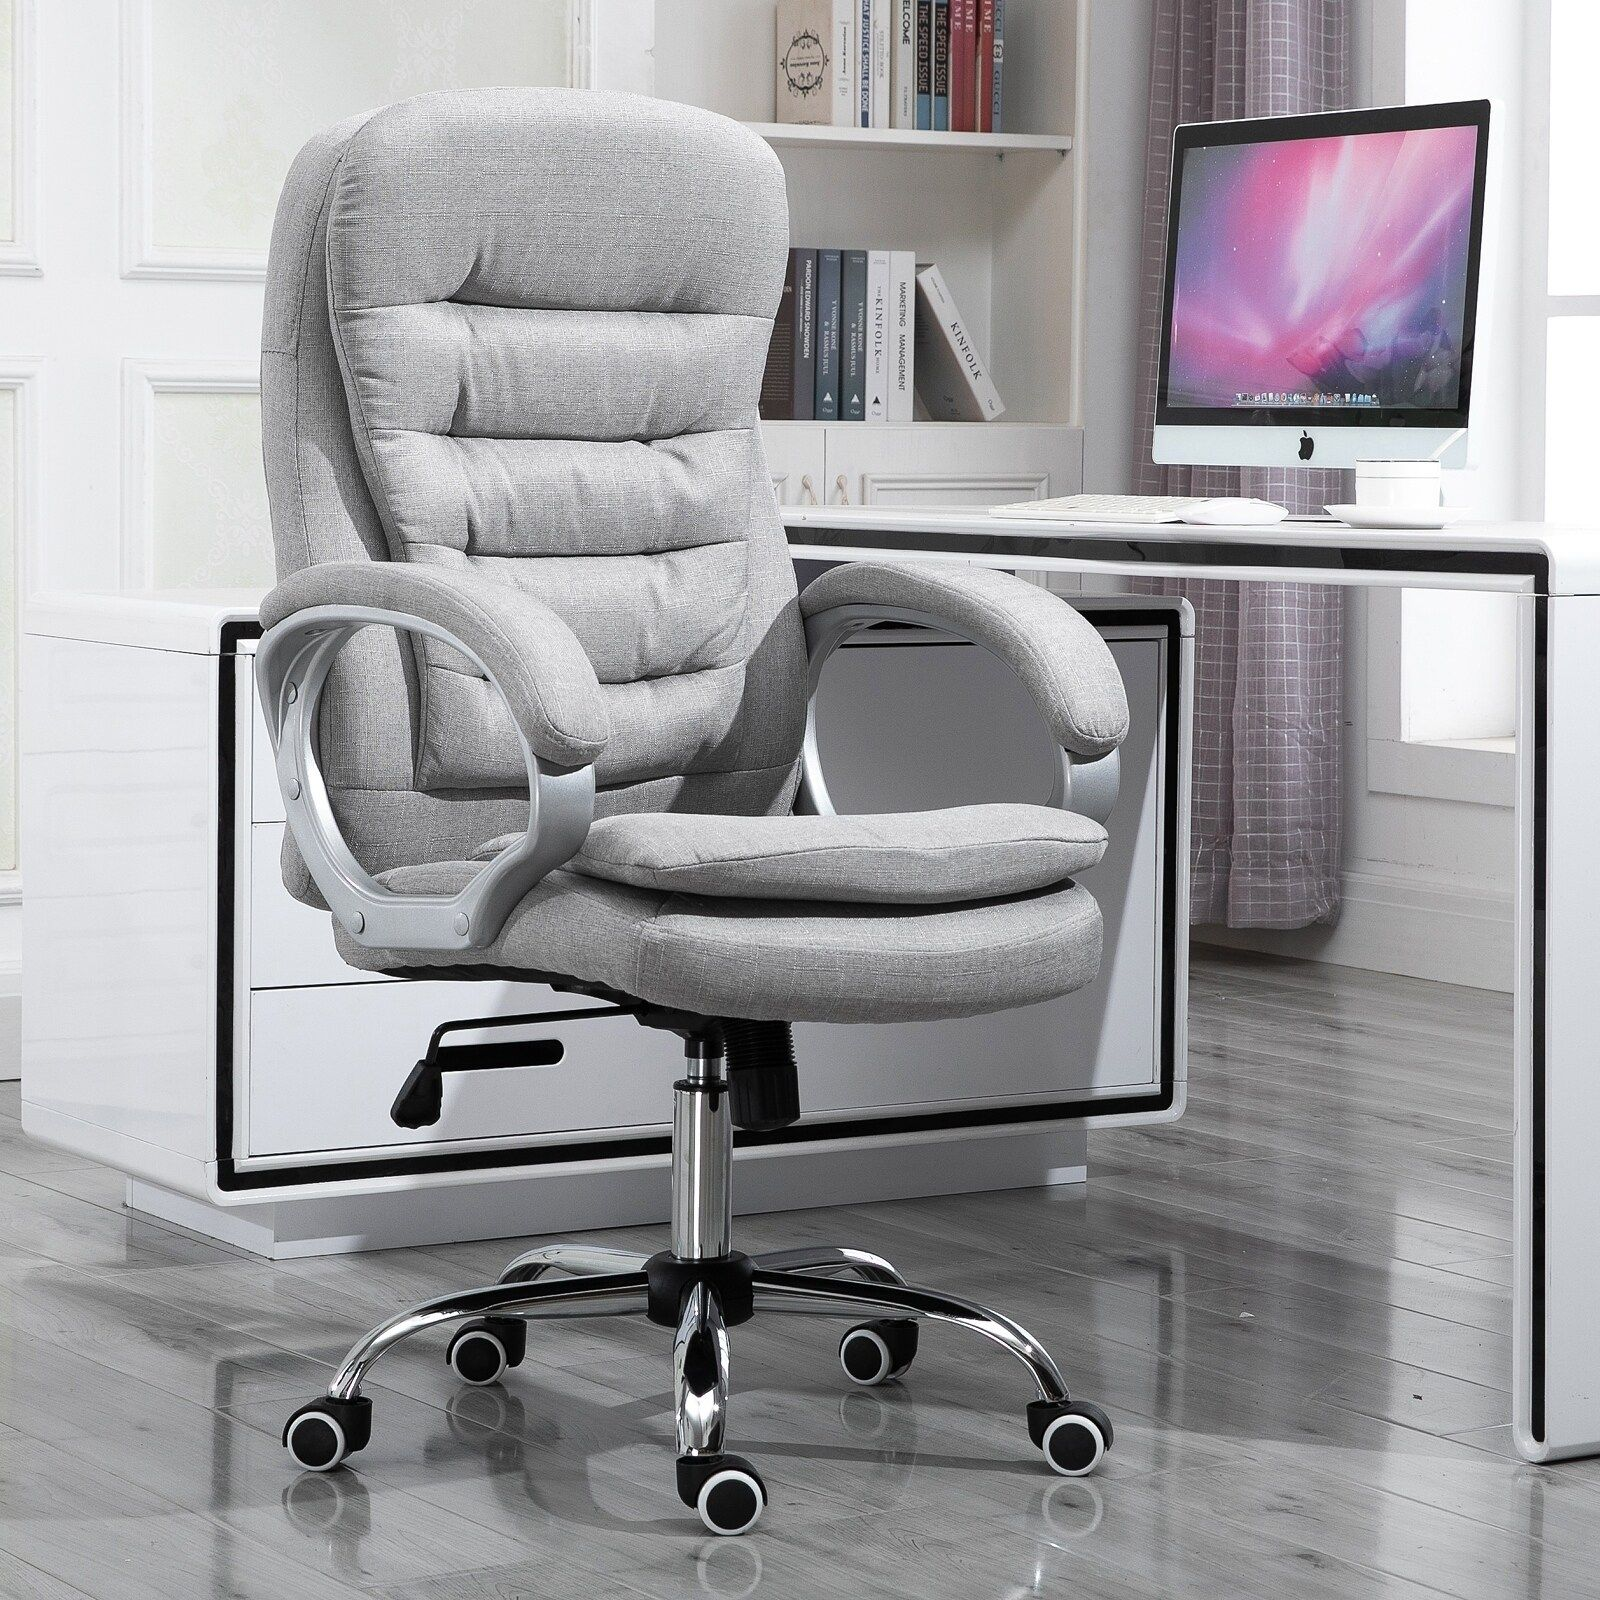 Vinsetto Adjustable Height Ergonomic High Back Home Office